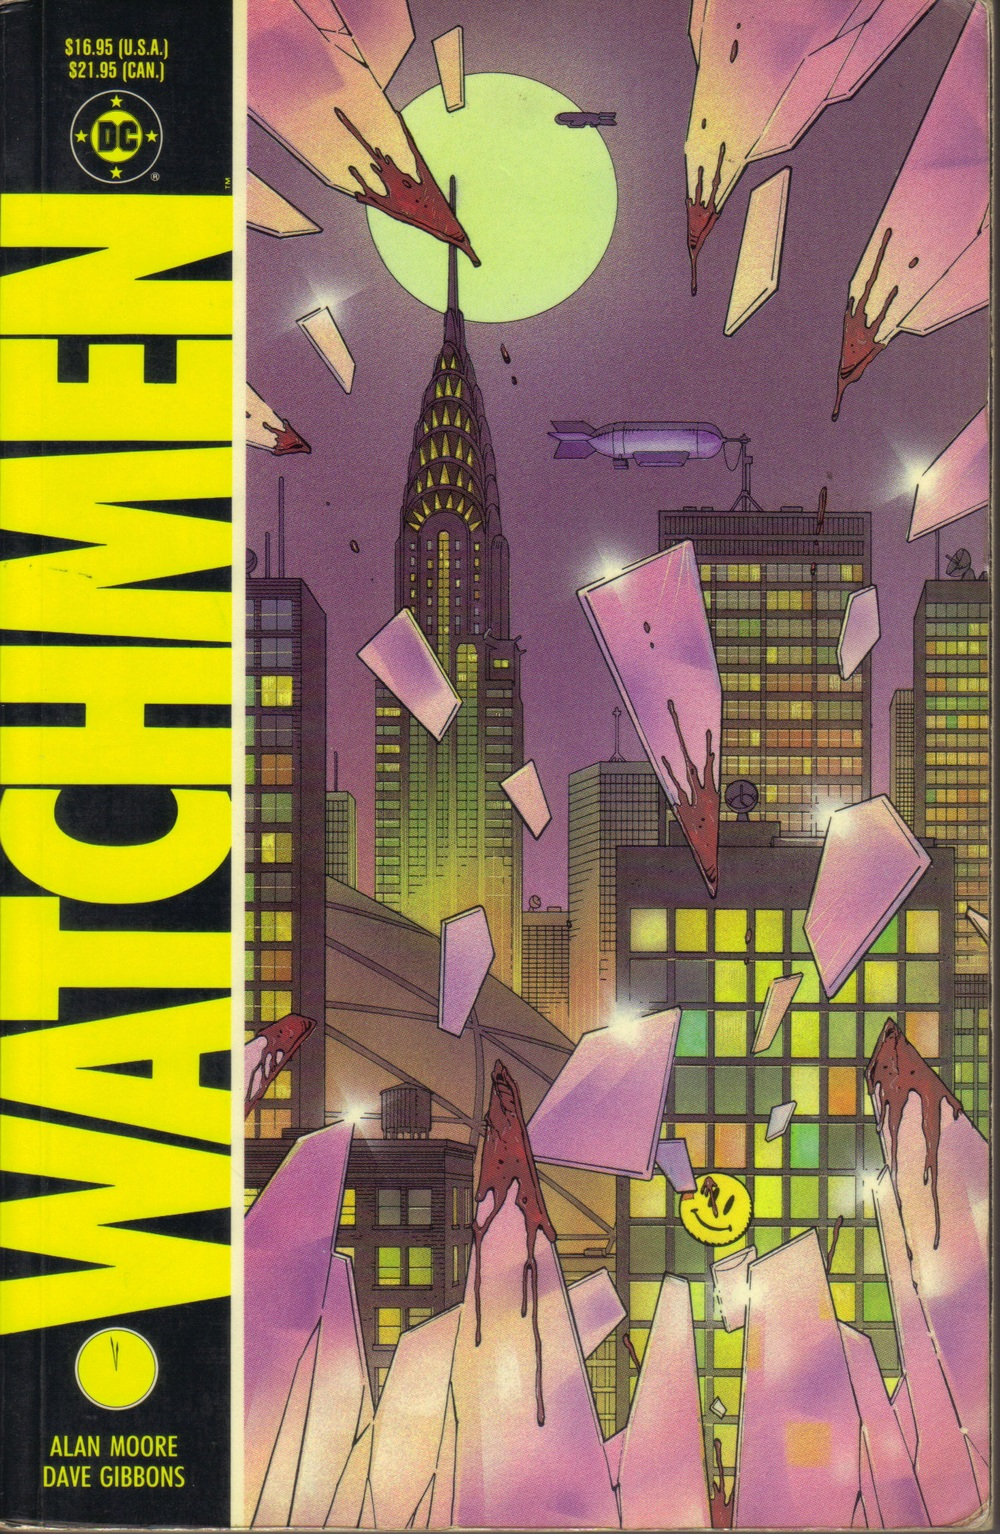 Cover of the first issue of Watchmen by Alan Moore and Dave Gibbons (via Open Letters Monthly)